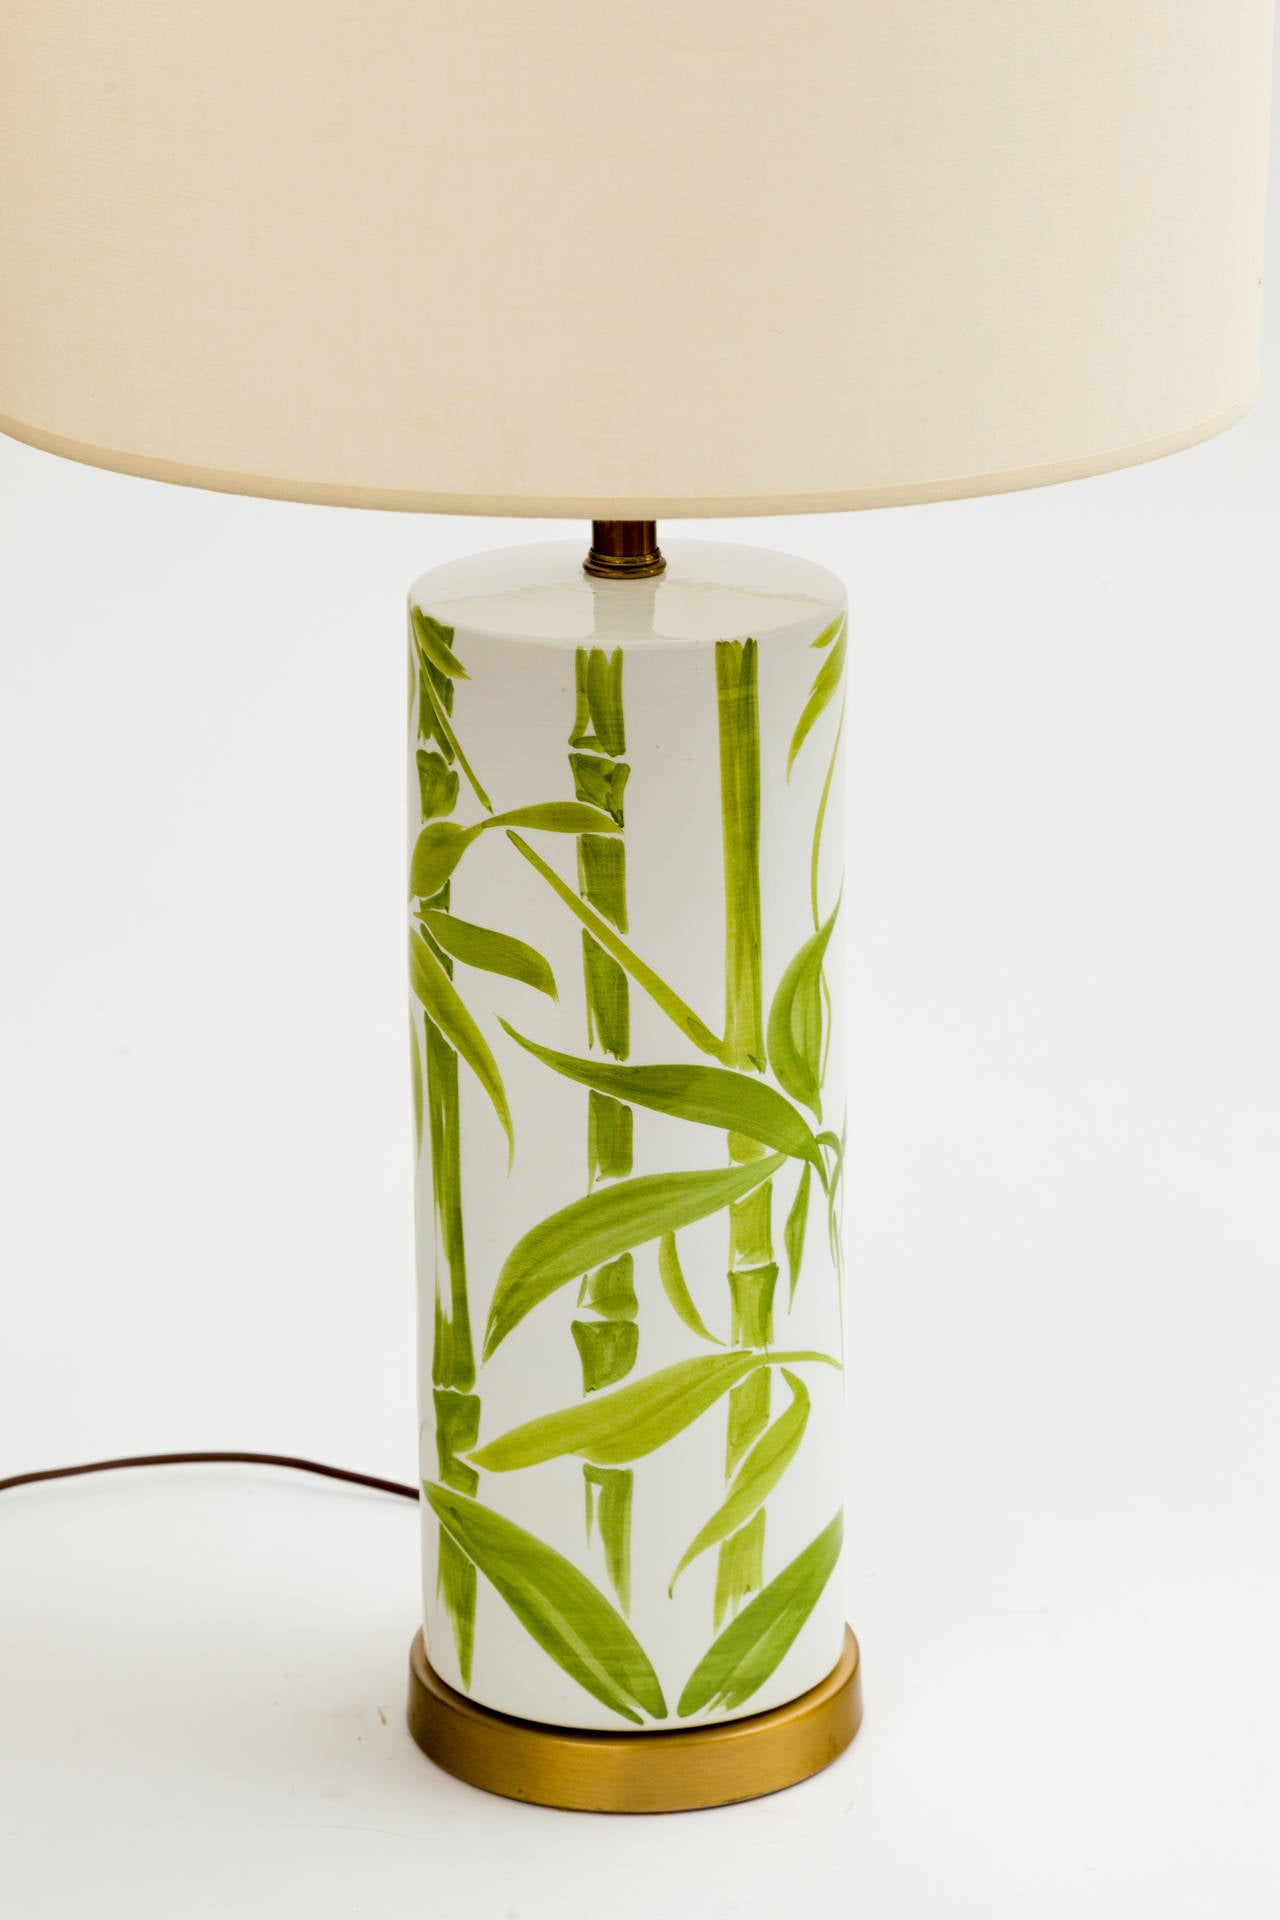 1960s Italian Ceramic Bamboo Lamp with Antique Chinese Jade Finial In Good Condition For Sale In New York, NY